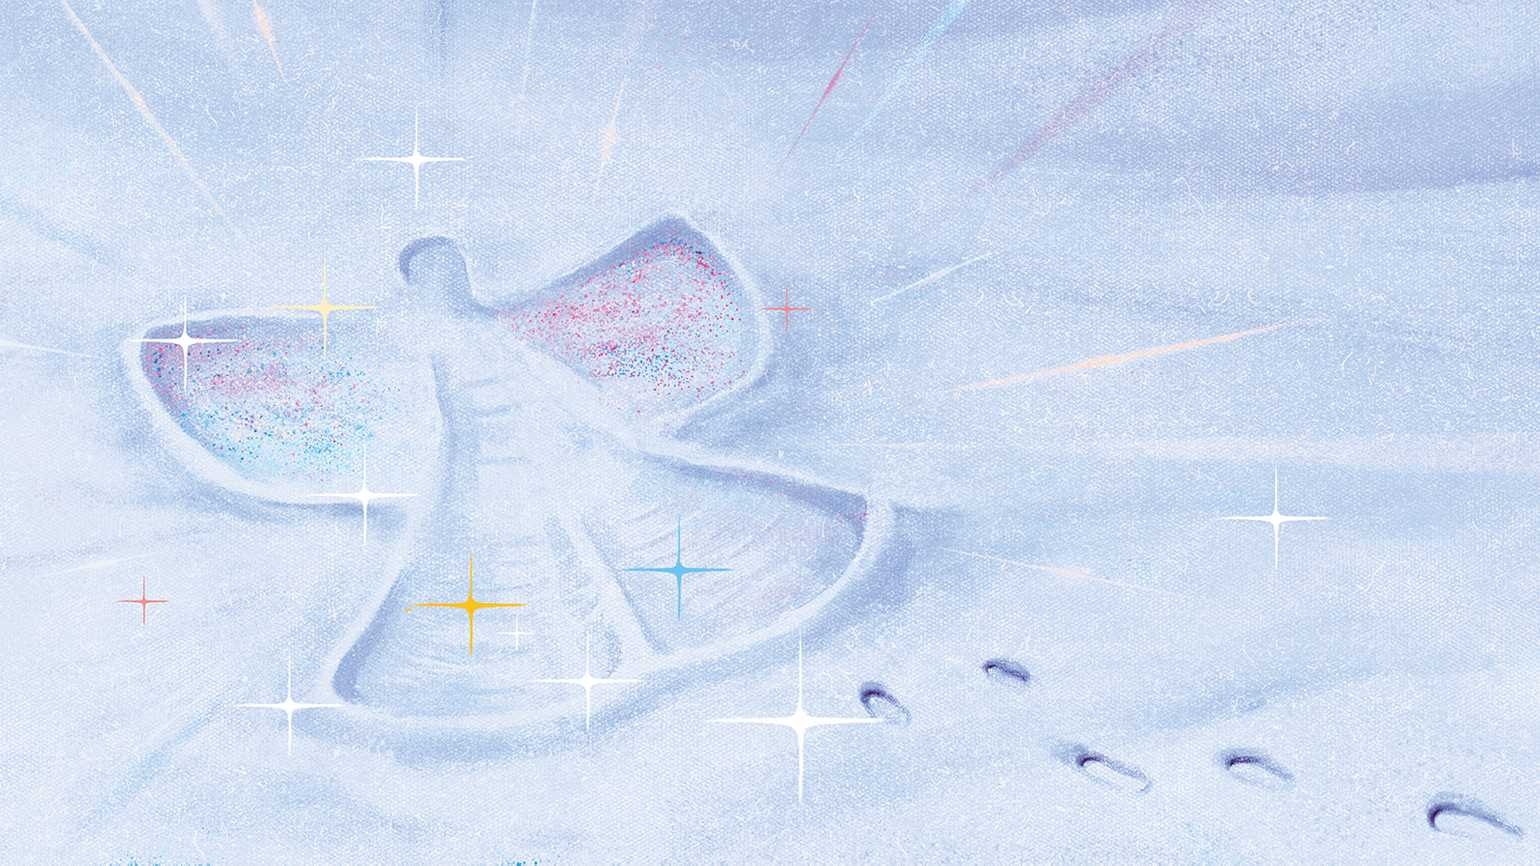 An artist's rendering of a snow angel; Illustration by Daniel Lievano